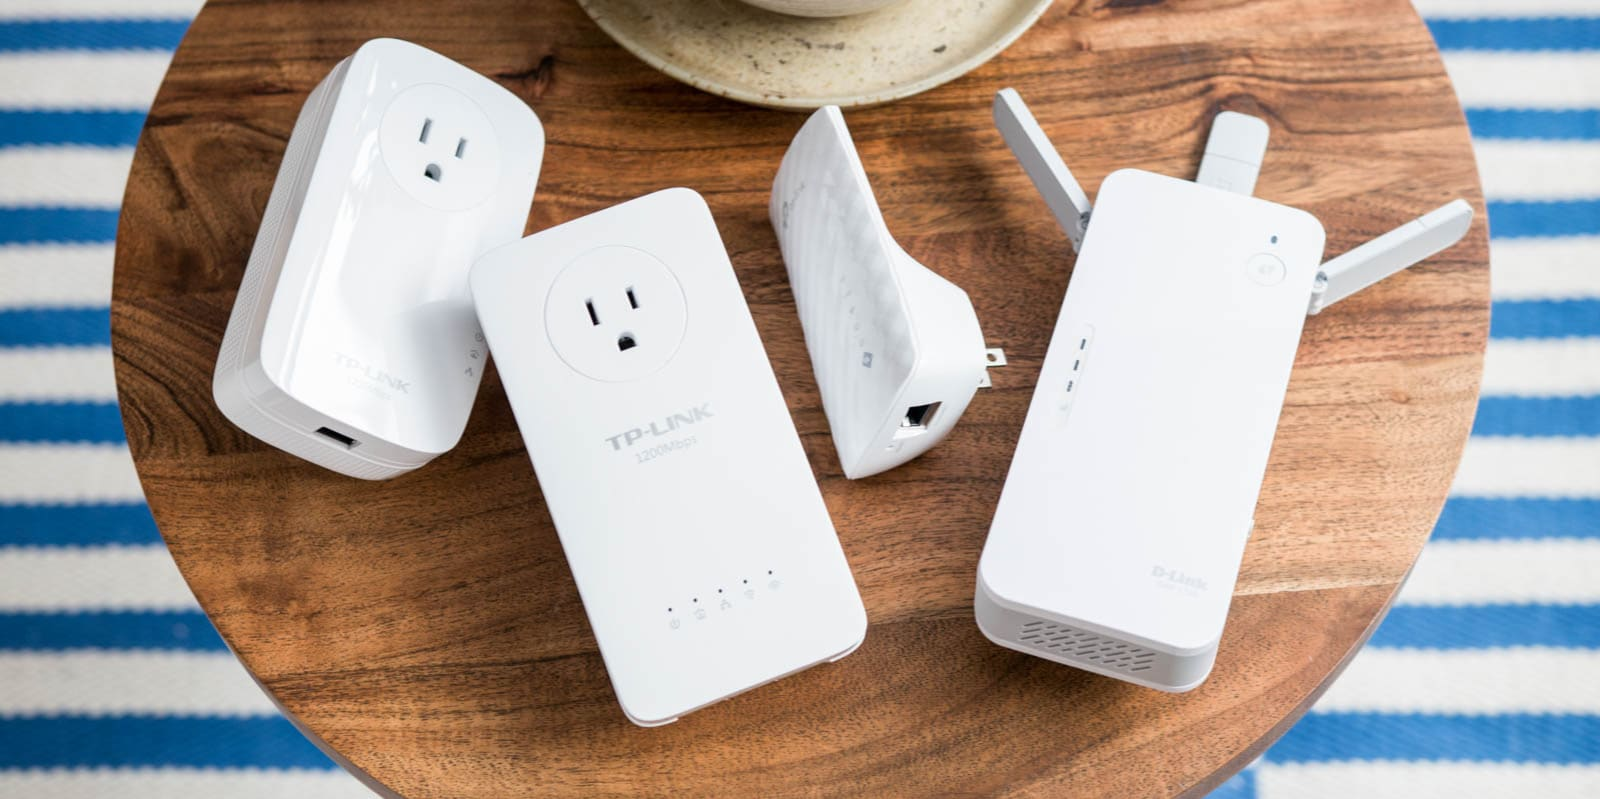 The best Wi-Fi extender